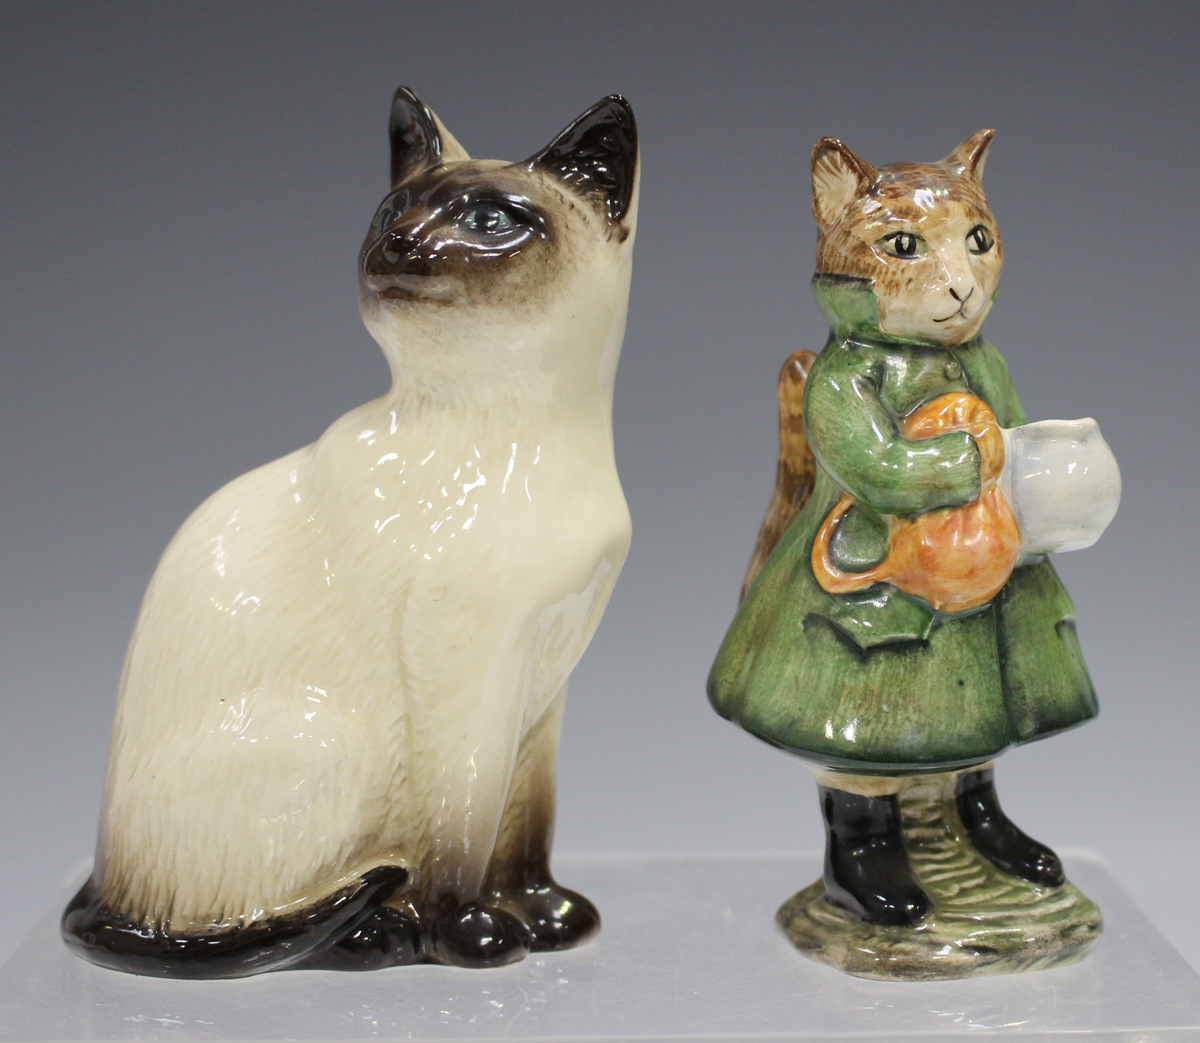 A Beswick Beatrix Potter's figure of Simpkin, mark BP-3b, together with a Royal Doulton Siamese Cat,